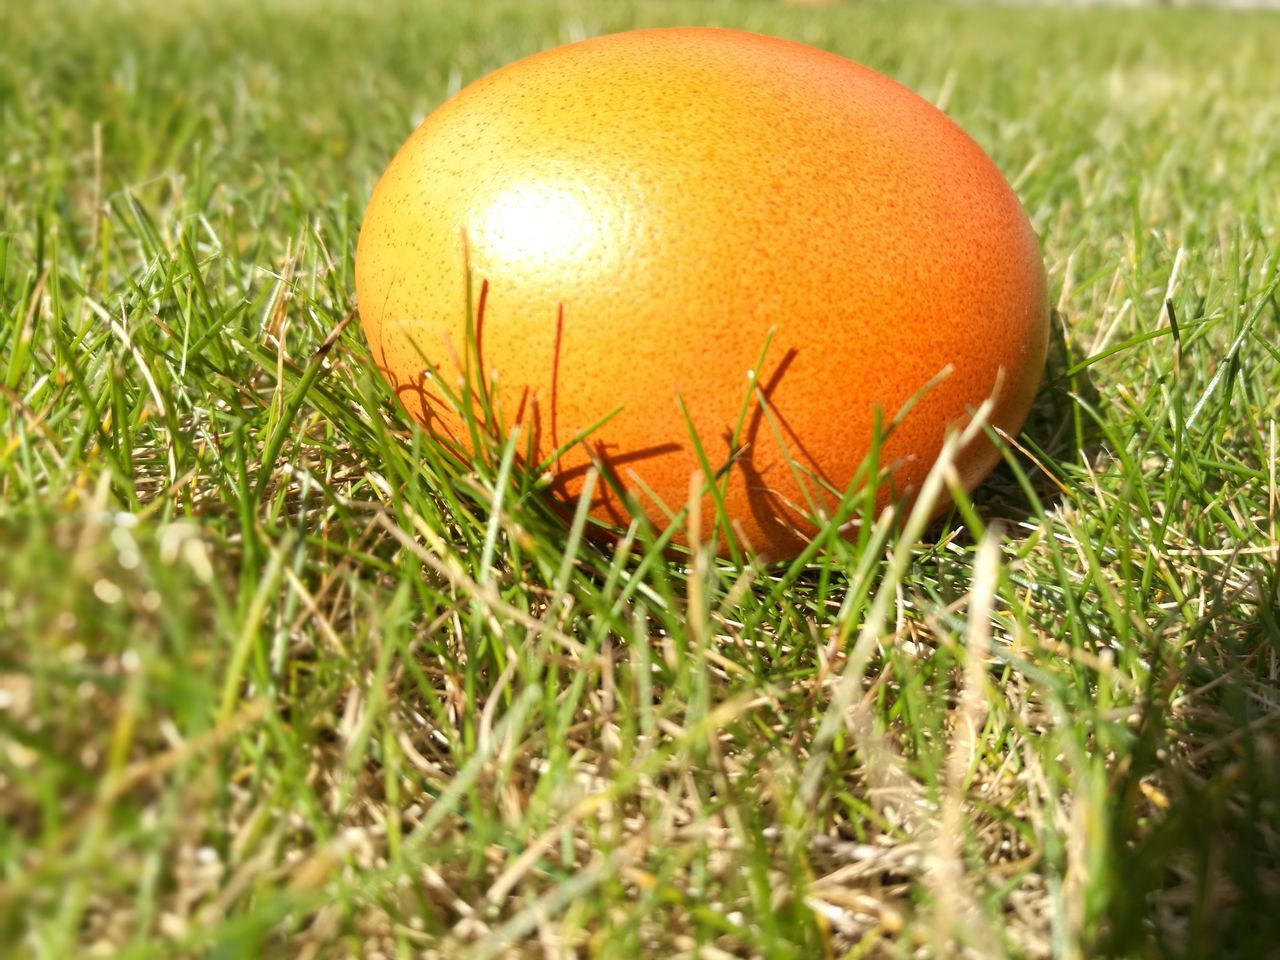 Grass Easter Nature Freshness Growth Golden Egg Egg Close-up